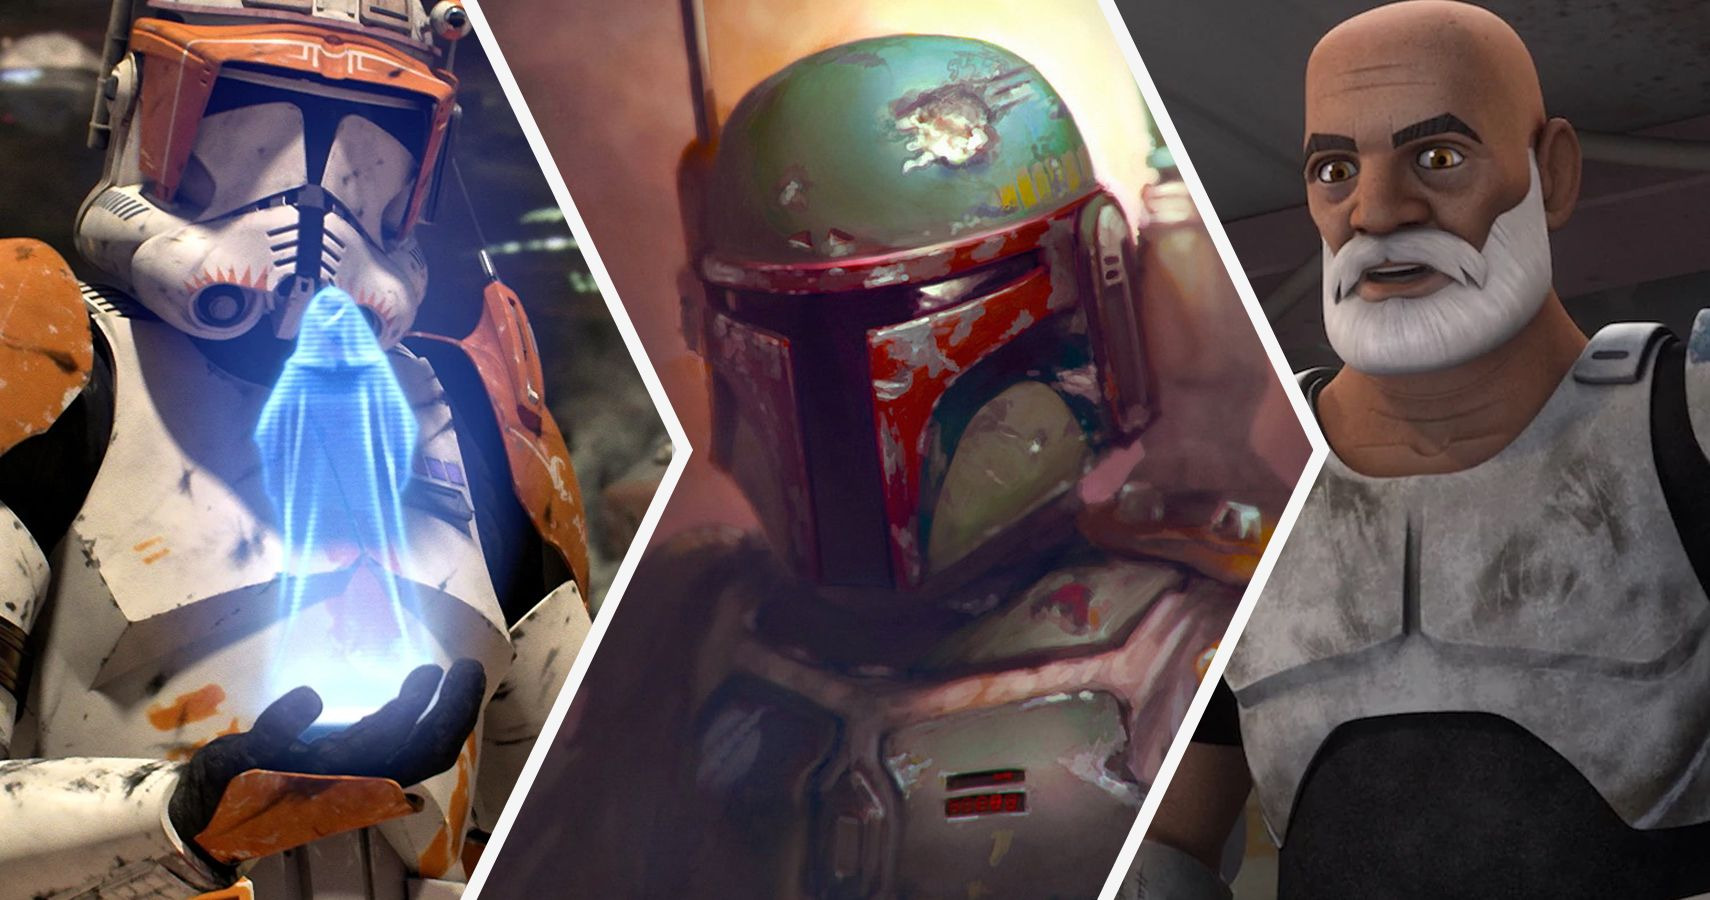 star wars 20 weird details about the clone troopers' bodies